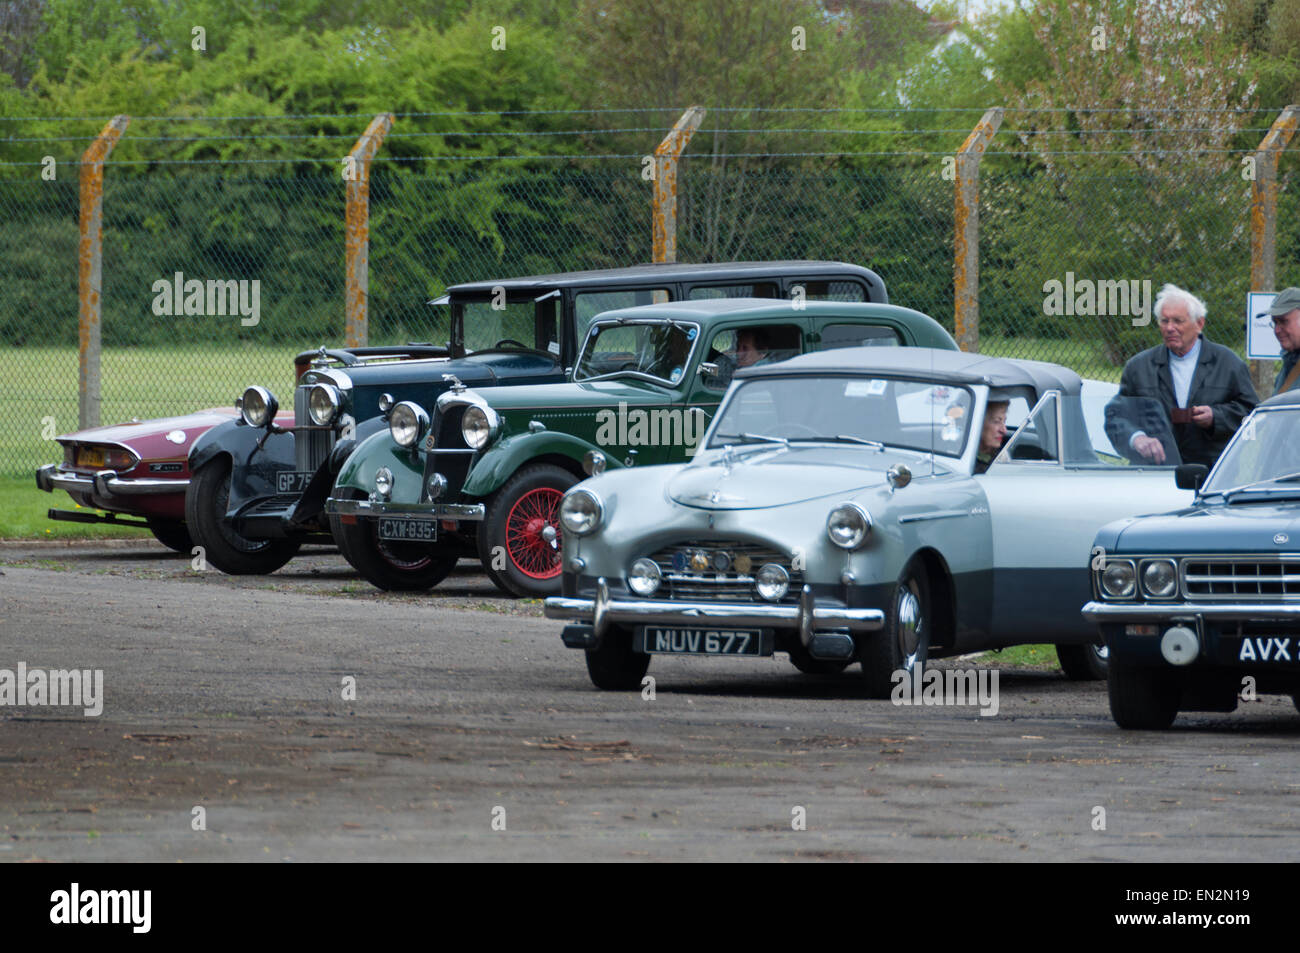 Vintage cars at the 5th Sunday Brunch Scramble in Bicester Heritage, Oxfordshire, England - Stock Image